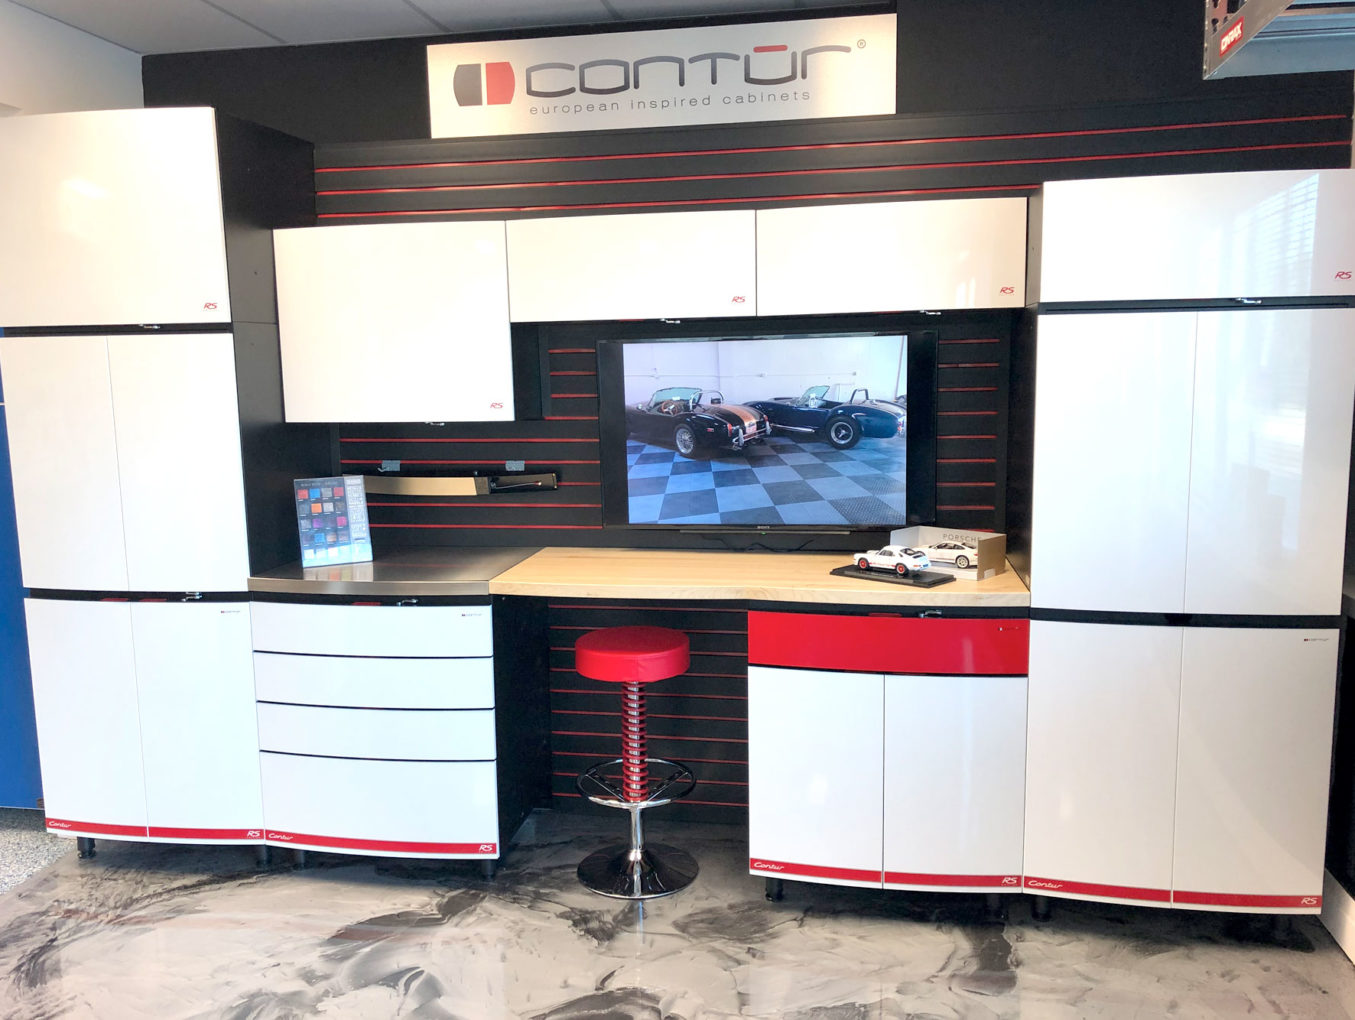 Contur Cabinets on Display